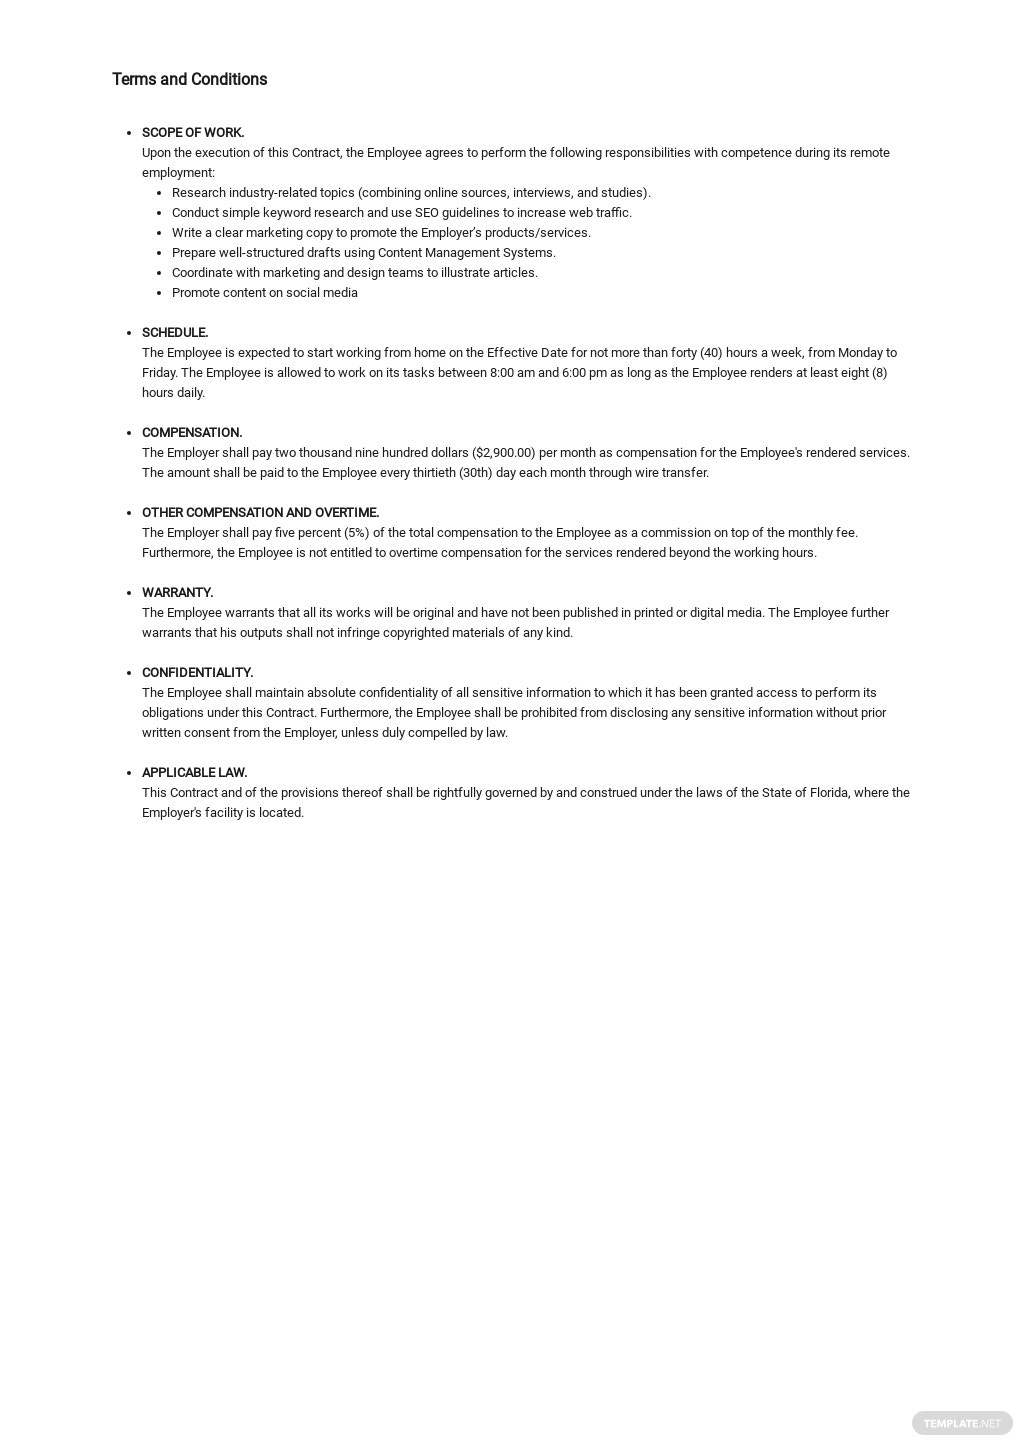 Work From Home Employment Contract Template 1.jpe